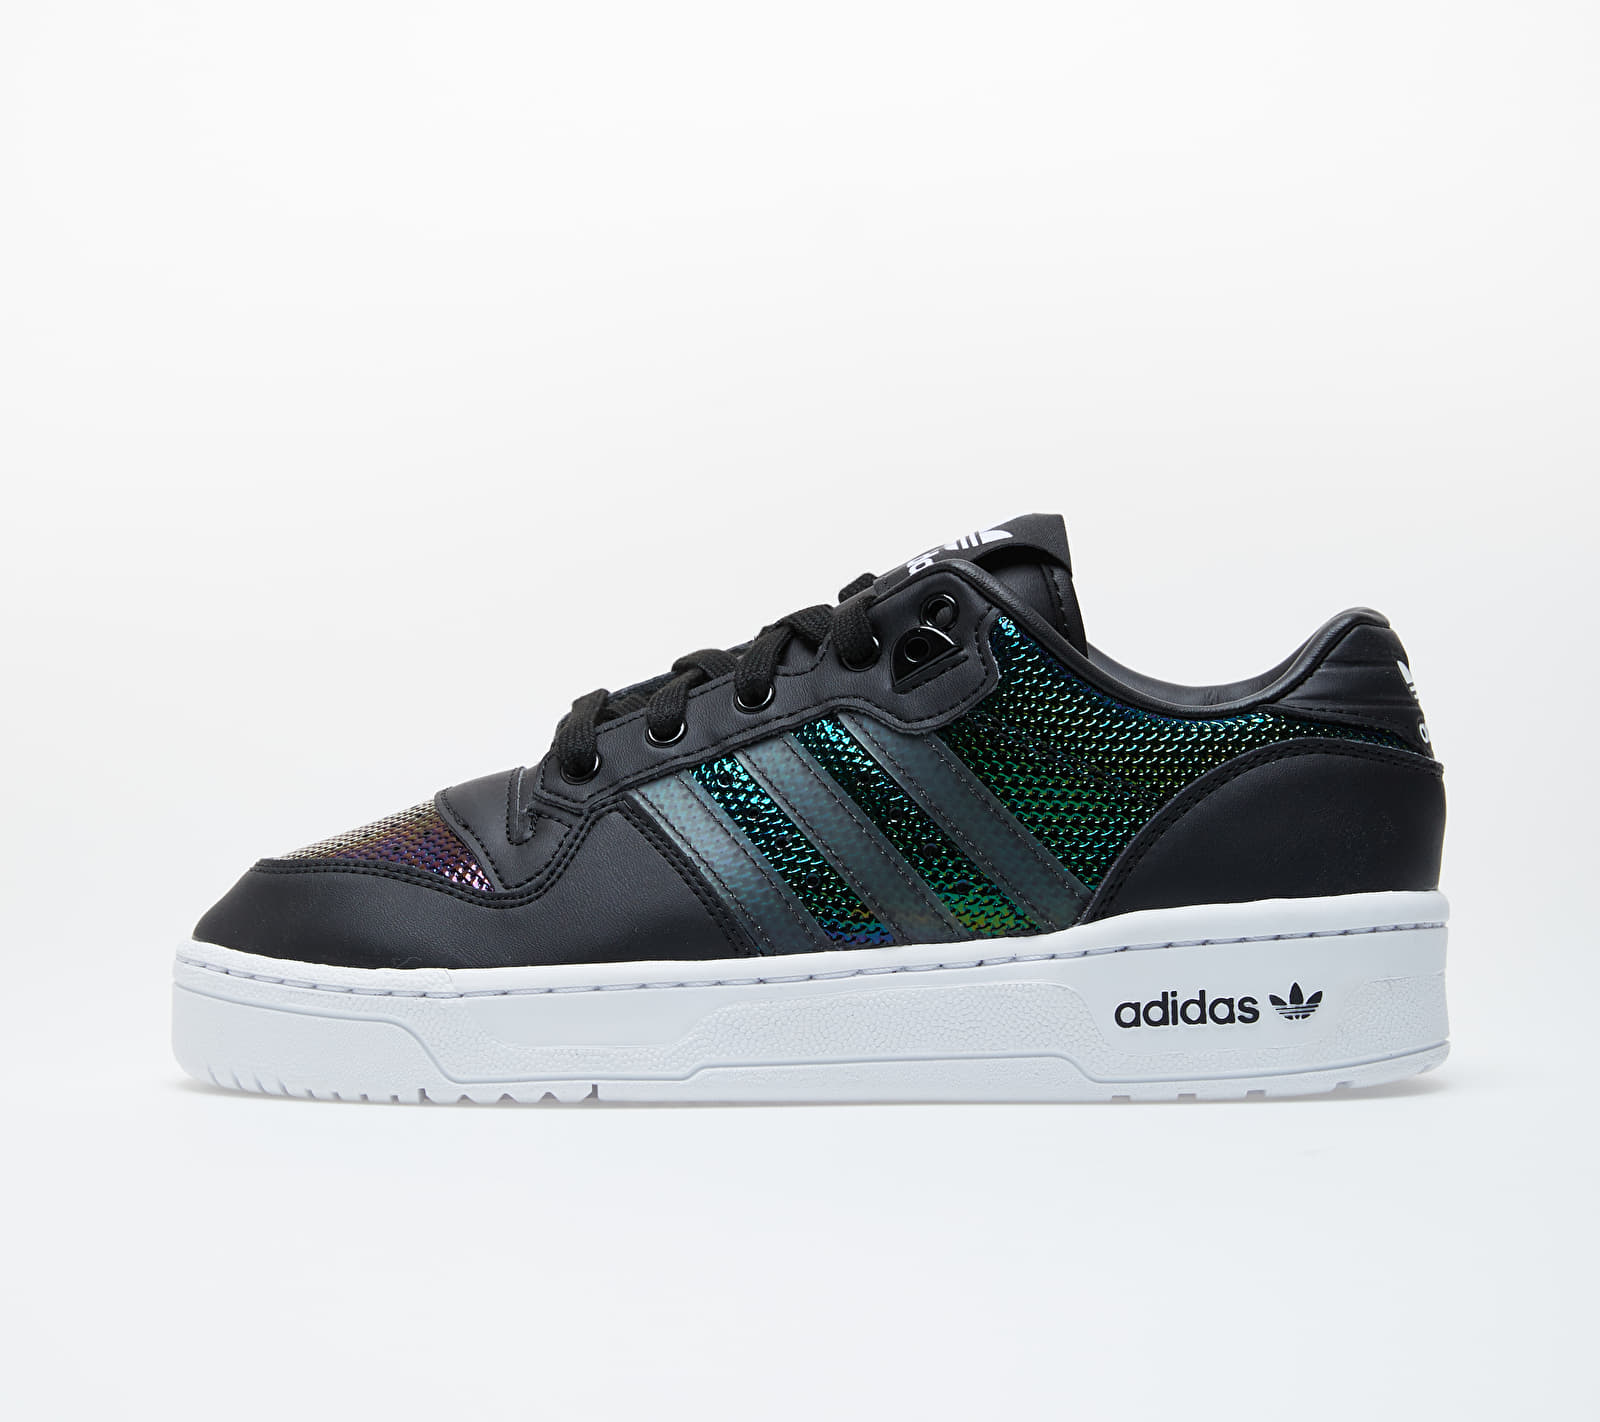 adidas Rivalry Low W Core Black/ Ftw White/ Mystery Ruby 1